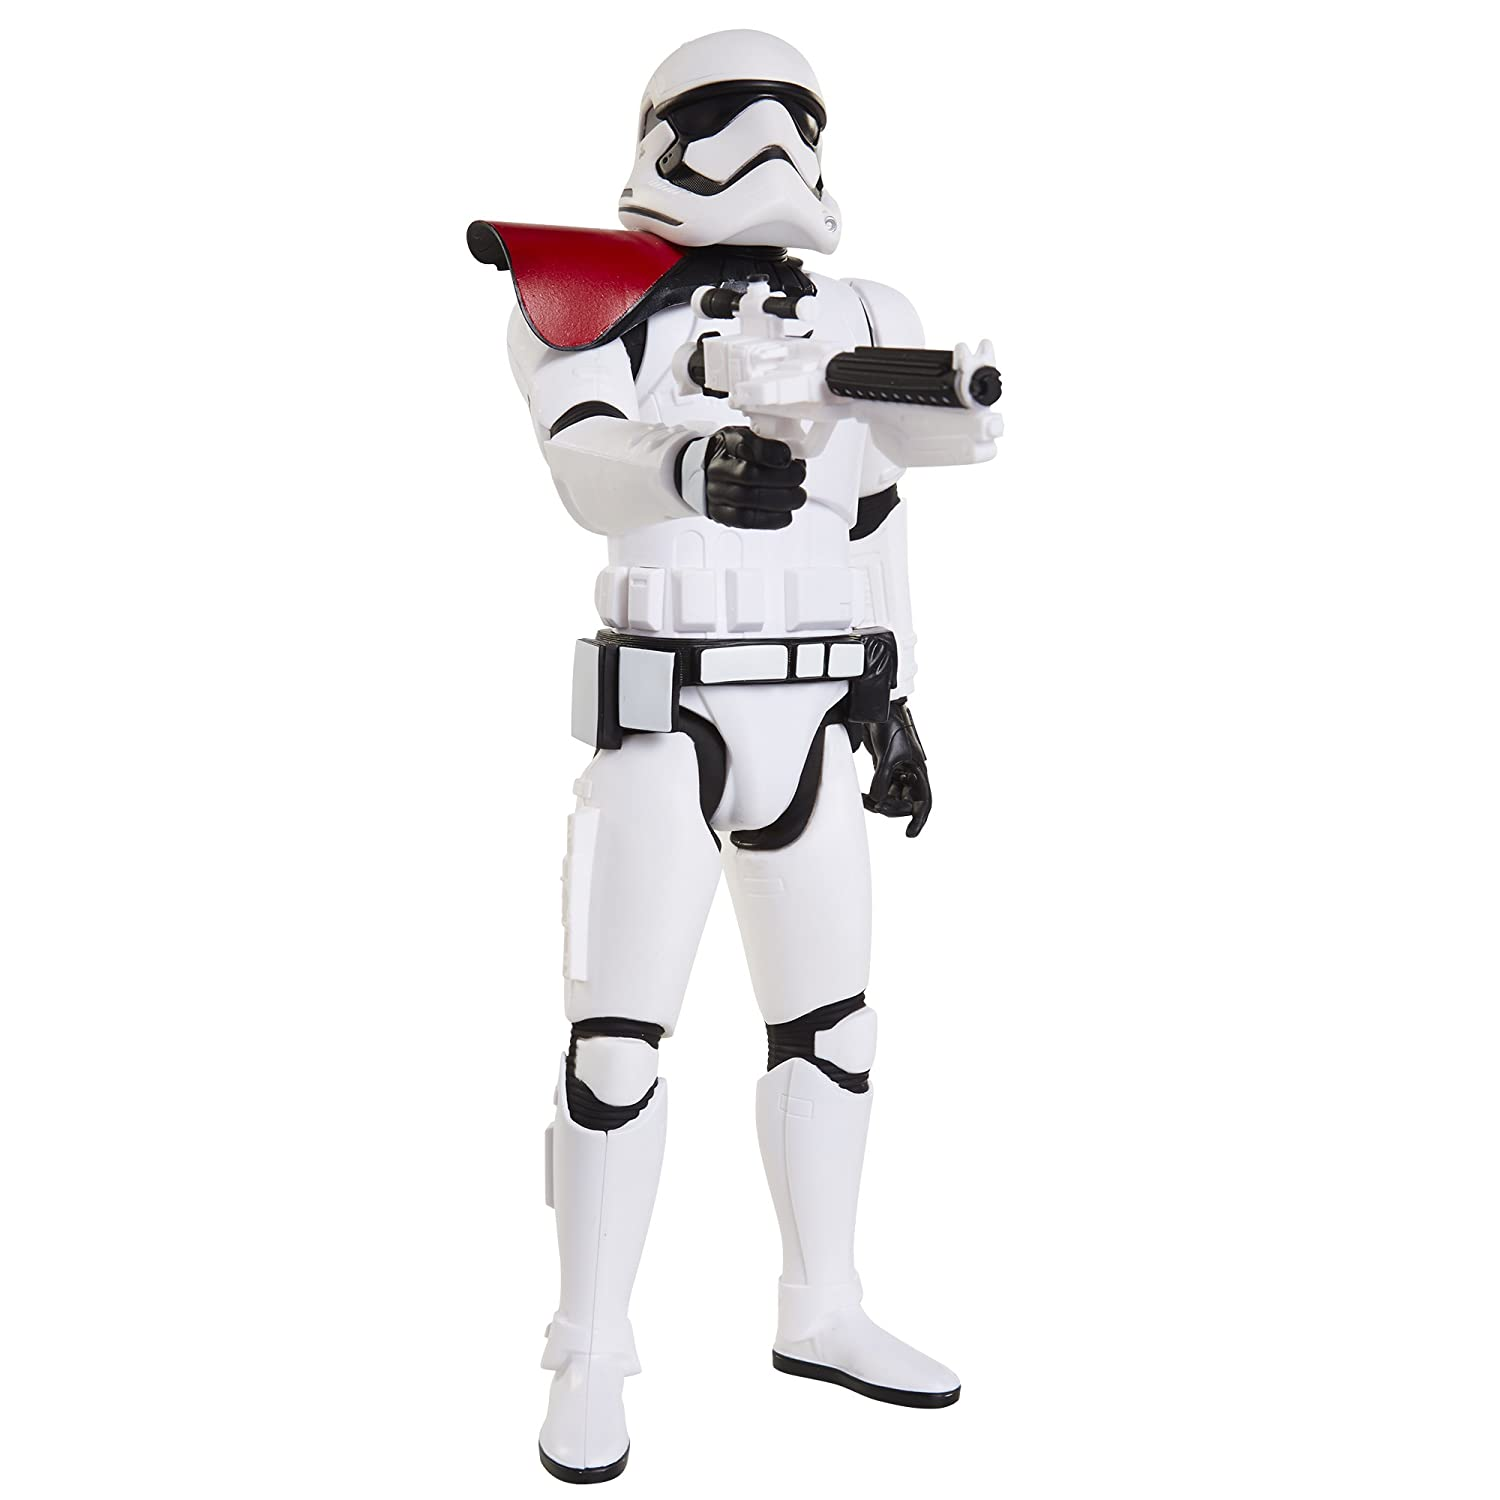 Star Wars Big Figs Episode VII 18 Red Pauldron Stormtrooper Action Figure